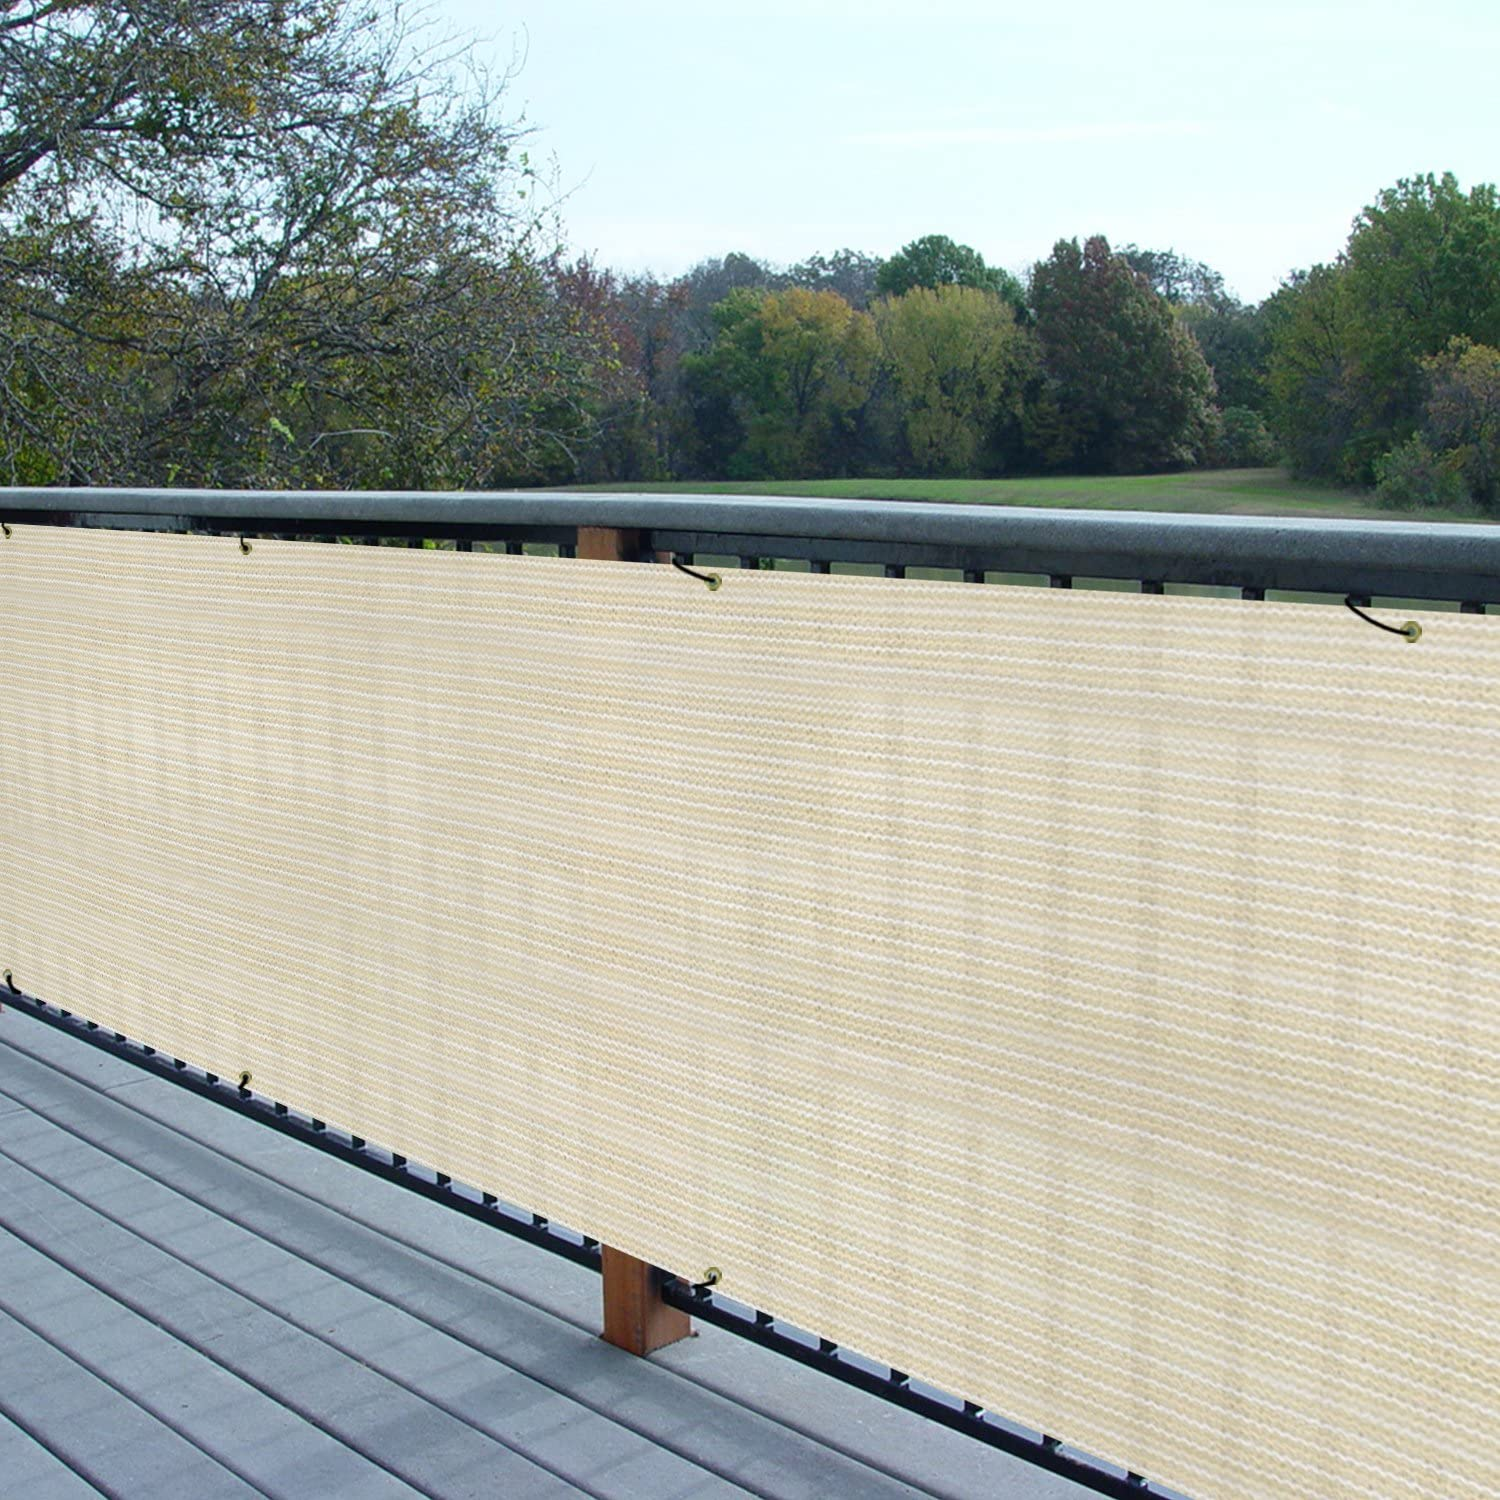 Beige 8 x 1 Commercial Outdoor Backyard Porch Deck Shade Windscreen Mesh Fabric 90/% Beockage 8 Years Warranty Customized E/&K Sunrise Fence Privacy Screen with Zipties